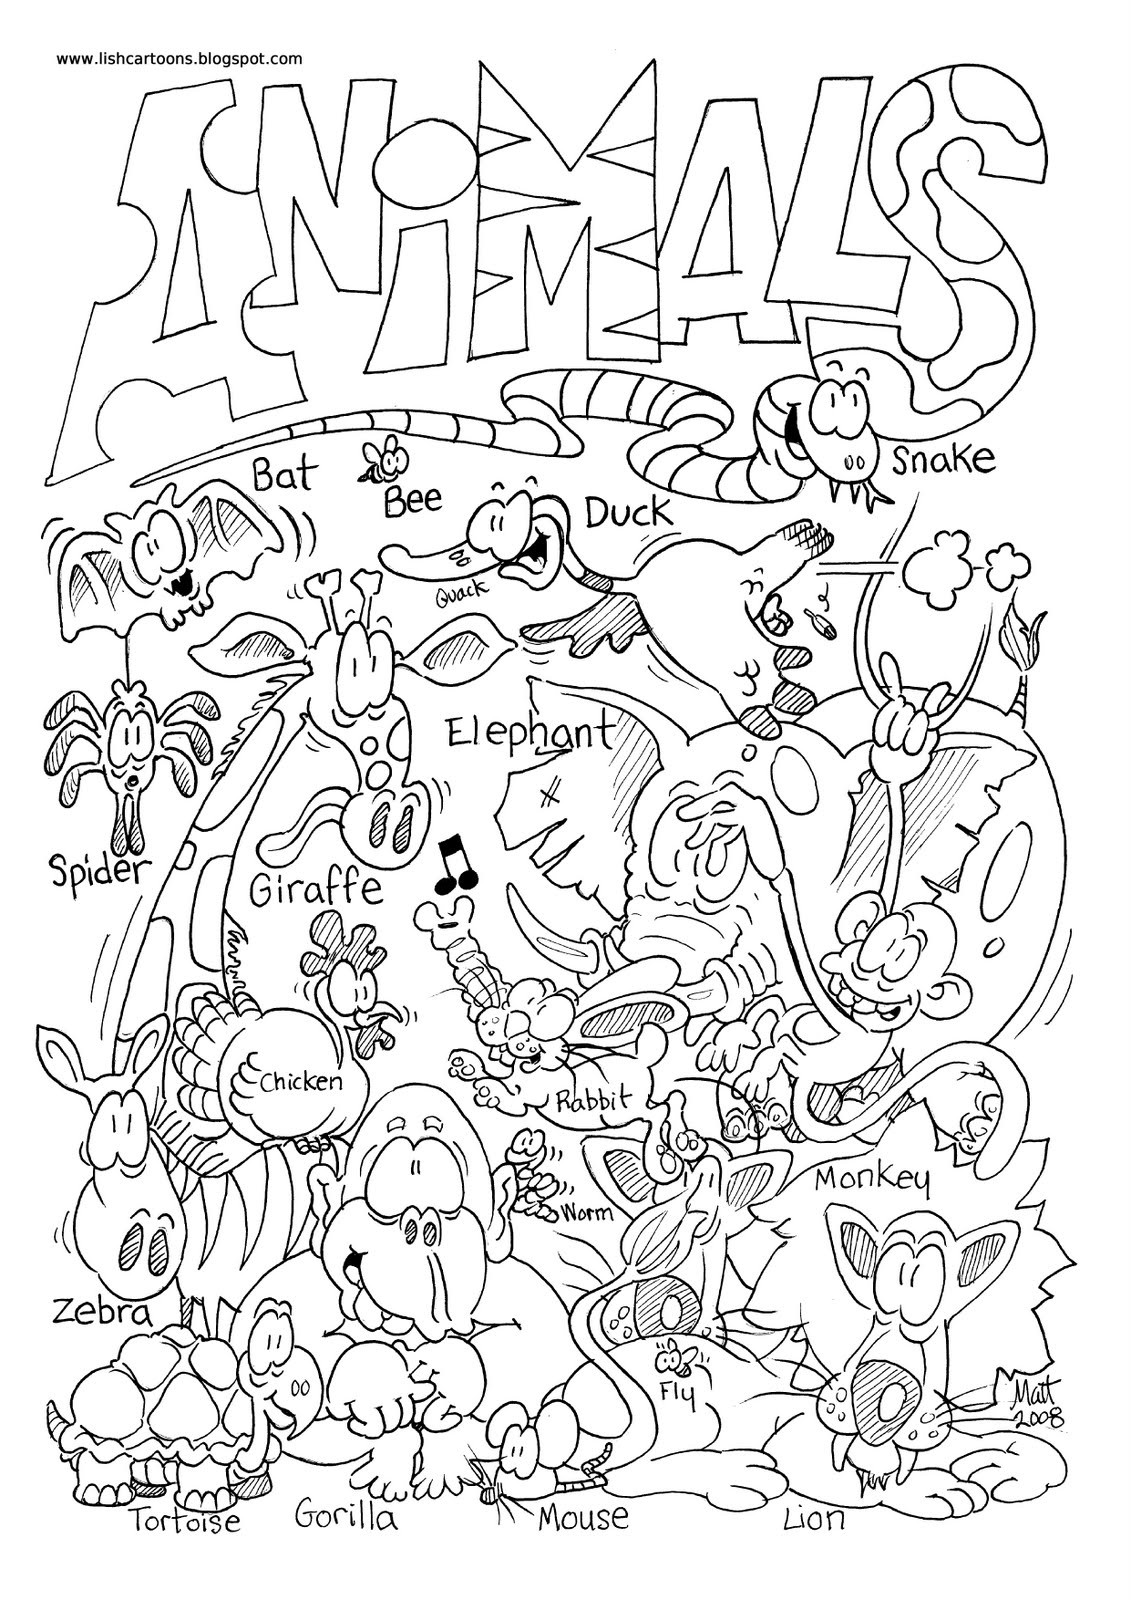 Zoo Animals Coloring Pages  Zoo Animal Coloring Pages 2 Animal To Color